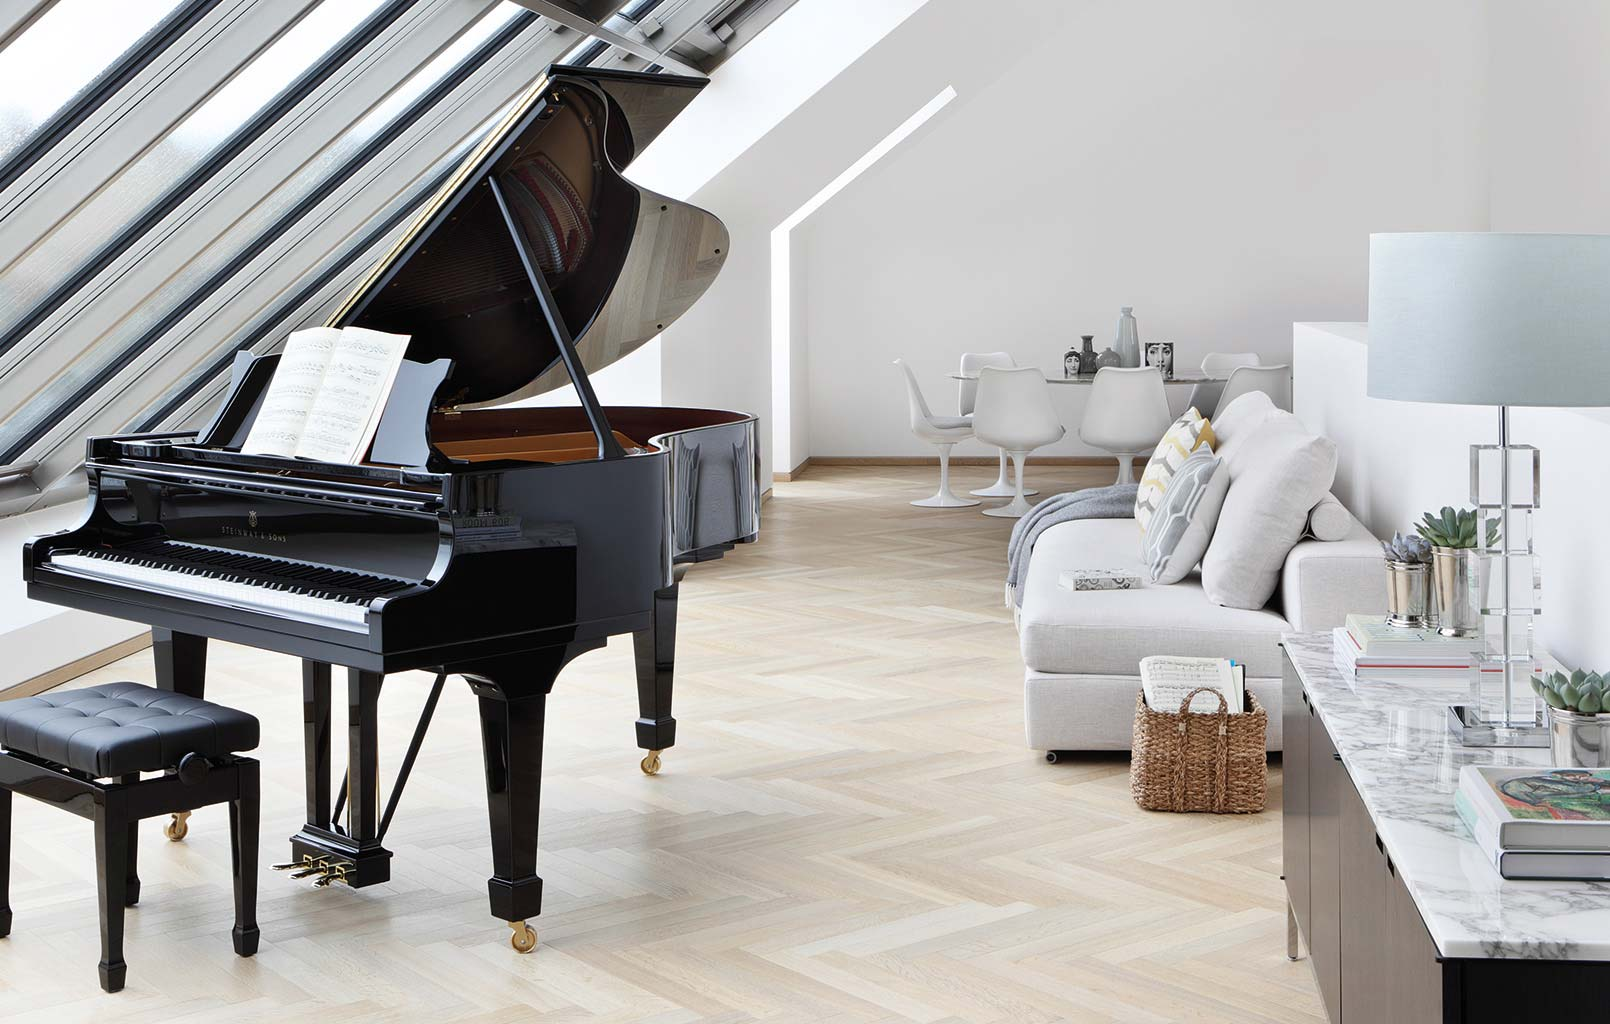 159 Facts About Steinway and the Pianos They Build